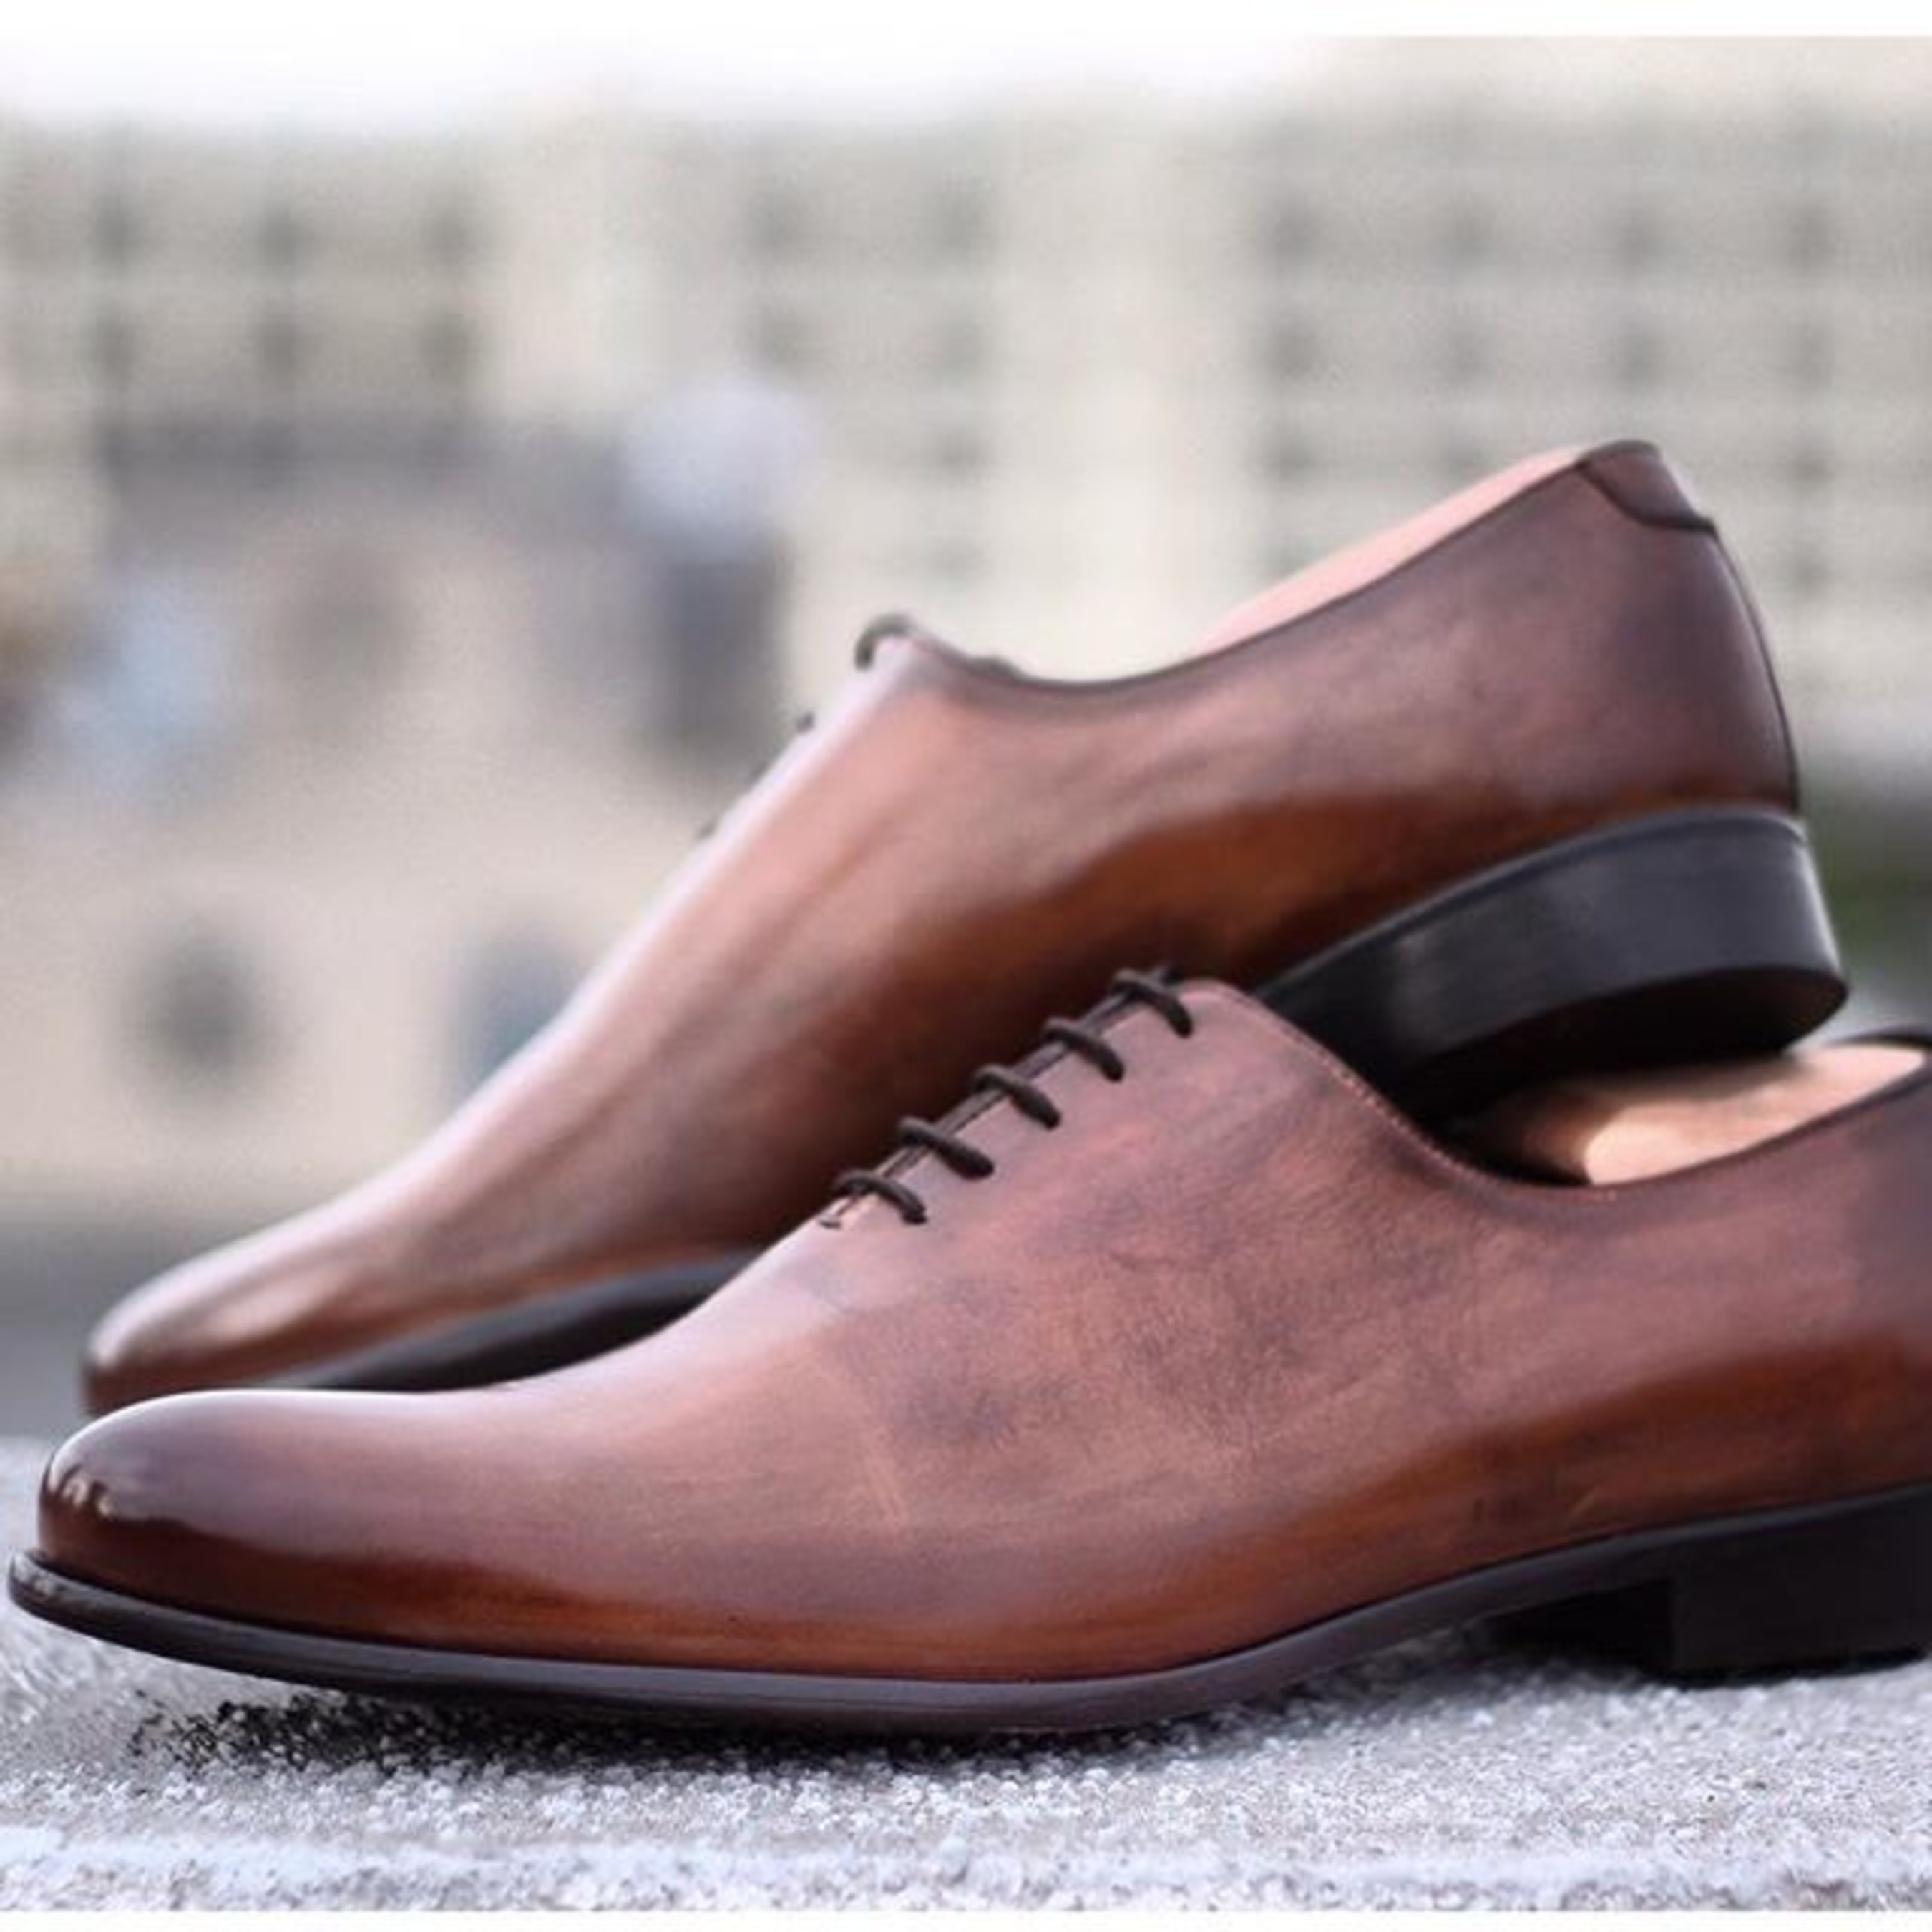 Paul Evans Donates Handcrafted, Italian Shoes to Homeless for NYC Department of Homeless Services